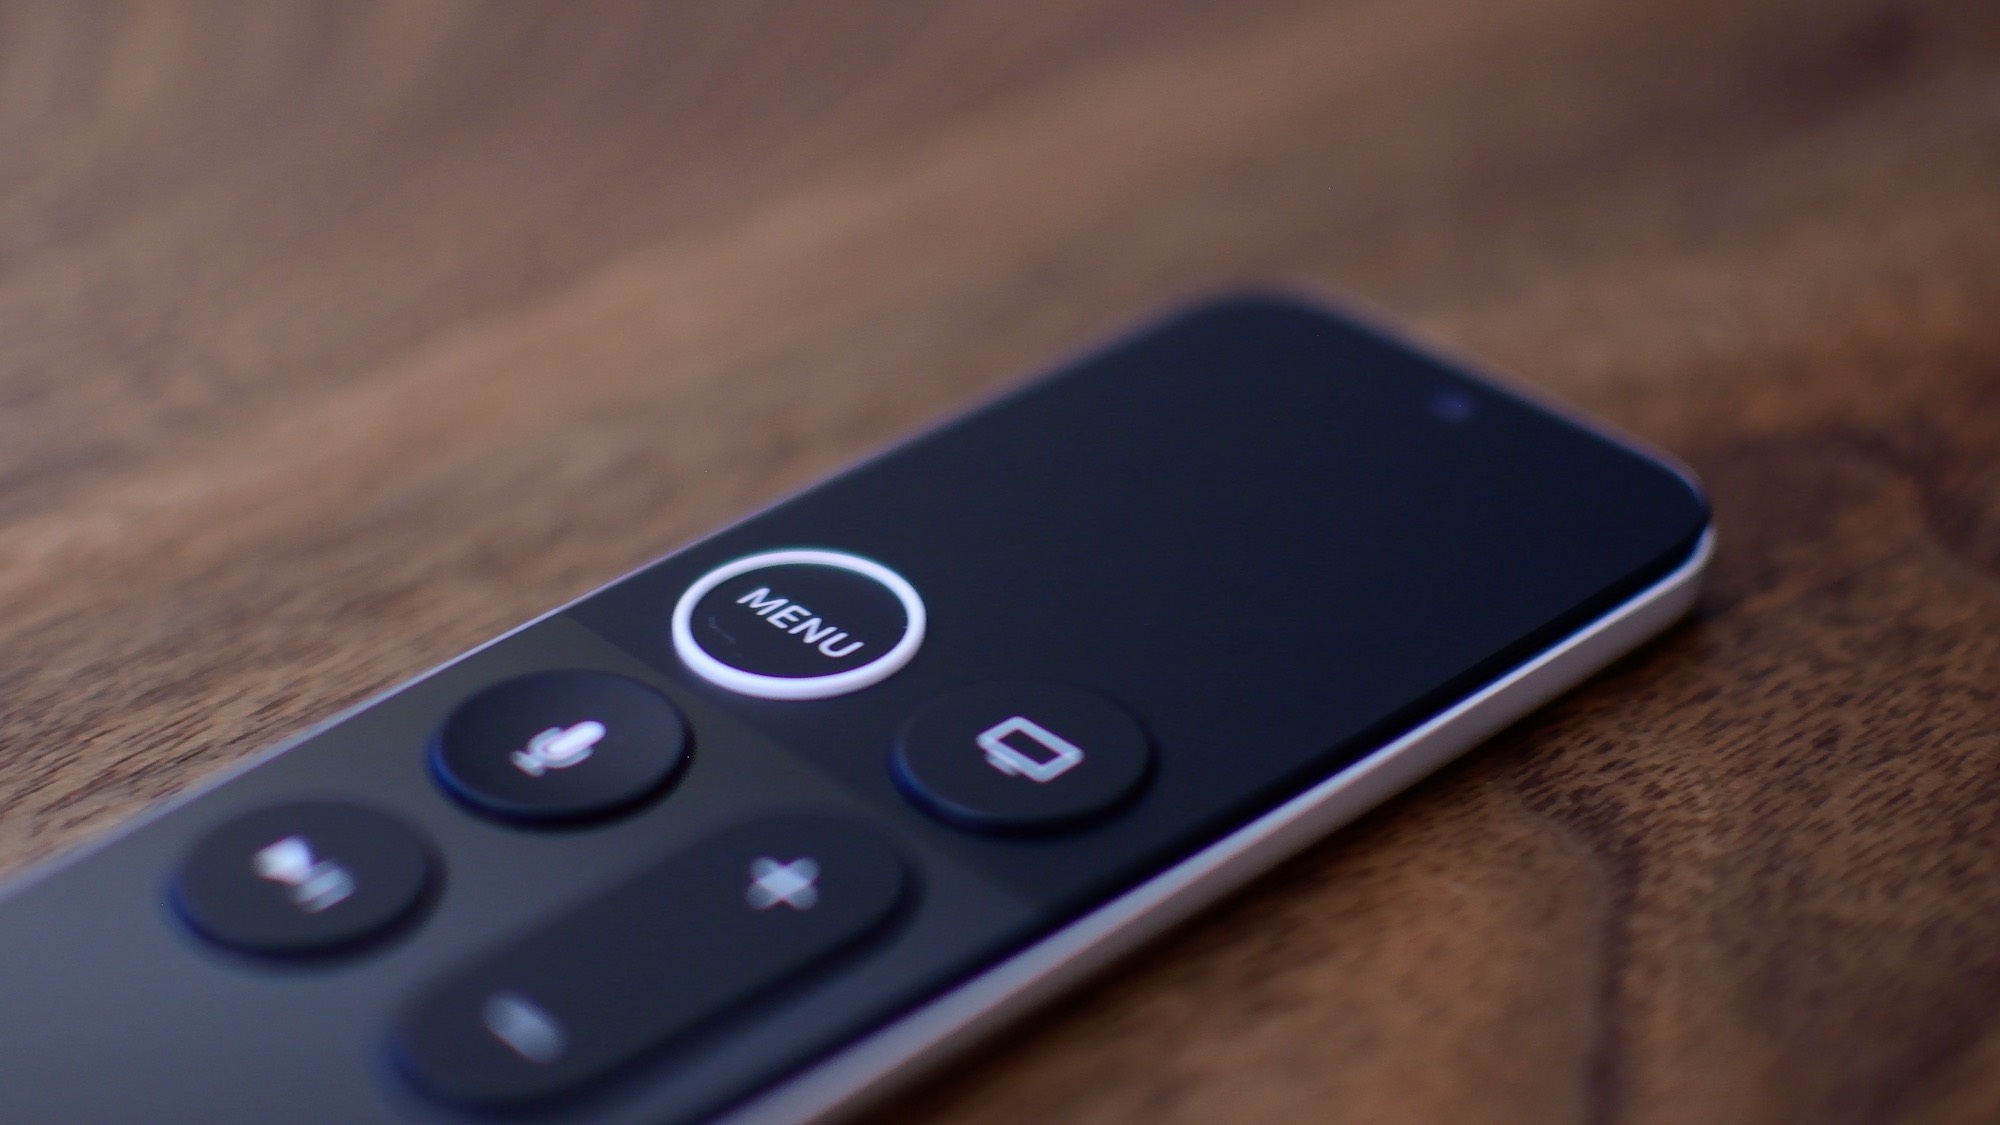 Siri Remote for Apple TV 4K